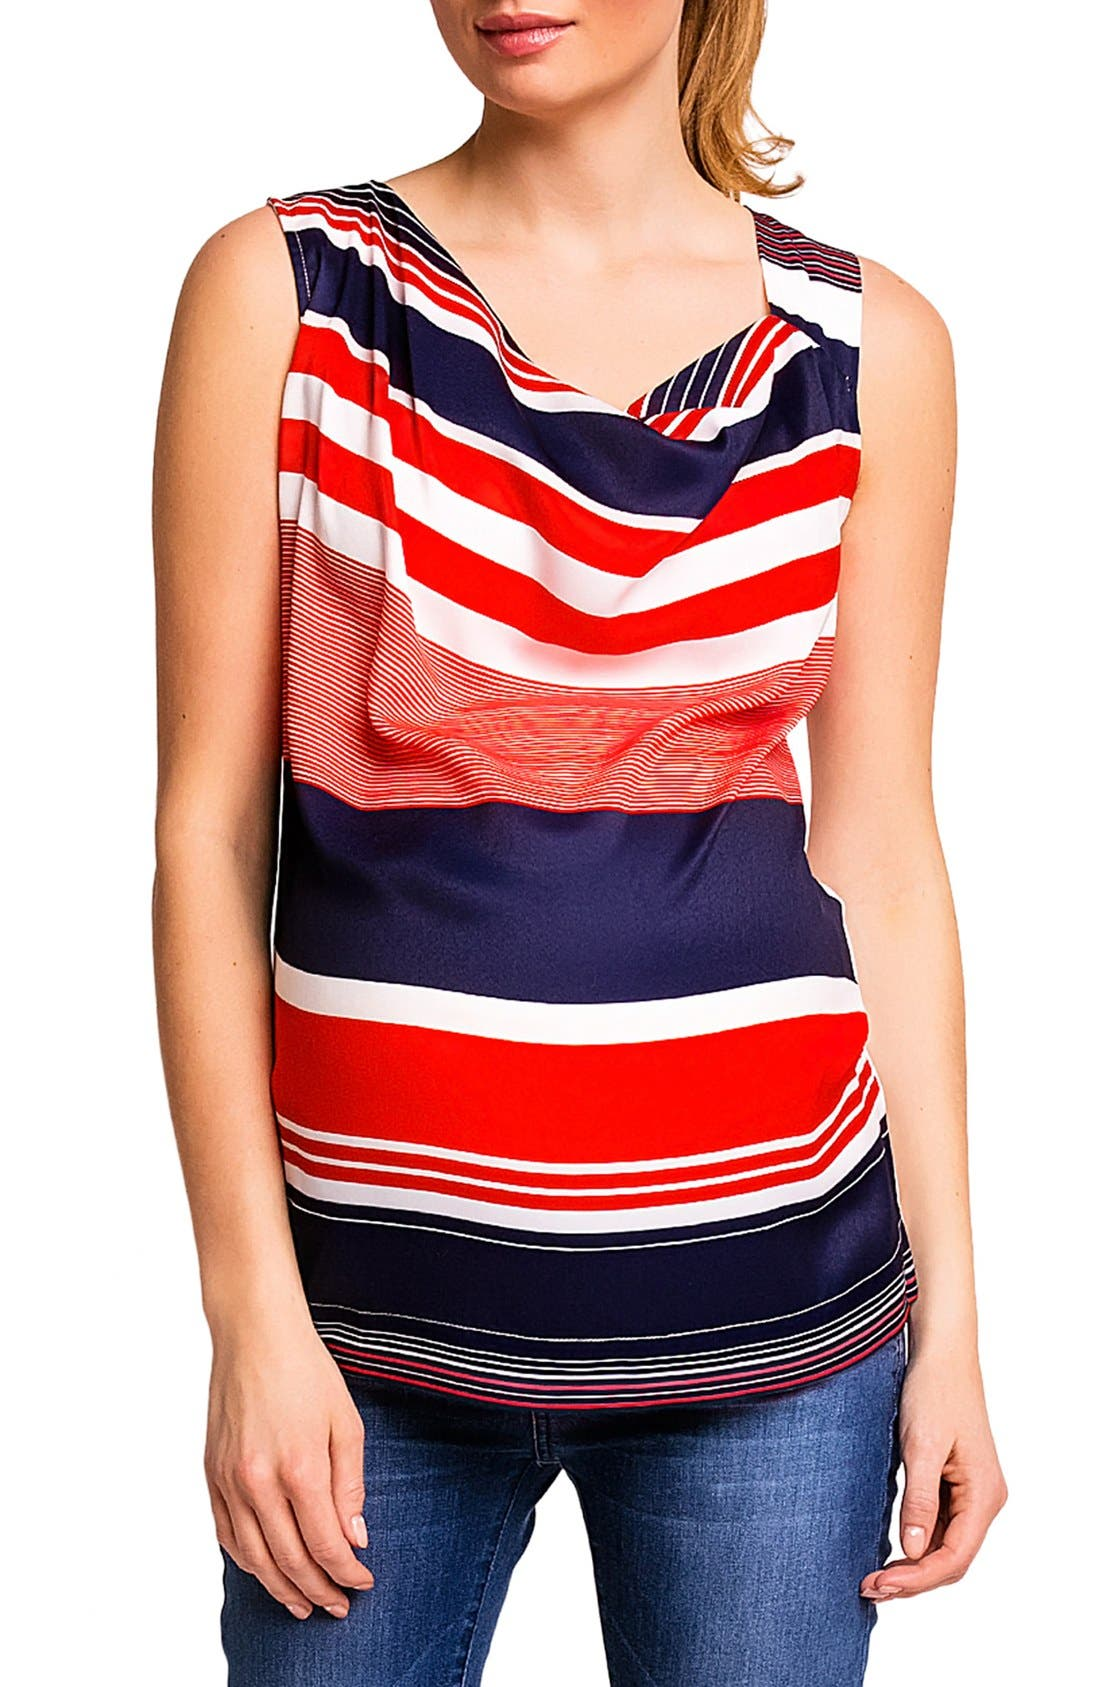 'Fialka' Maternity Top,                             Main thumbnail 1, color,                             RED/BLUE STRIPES